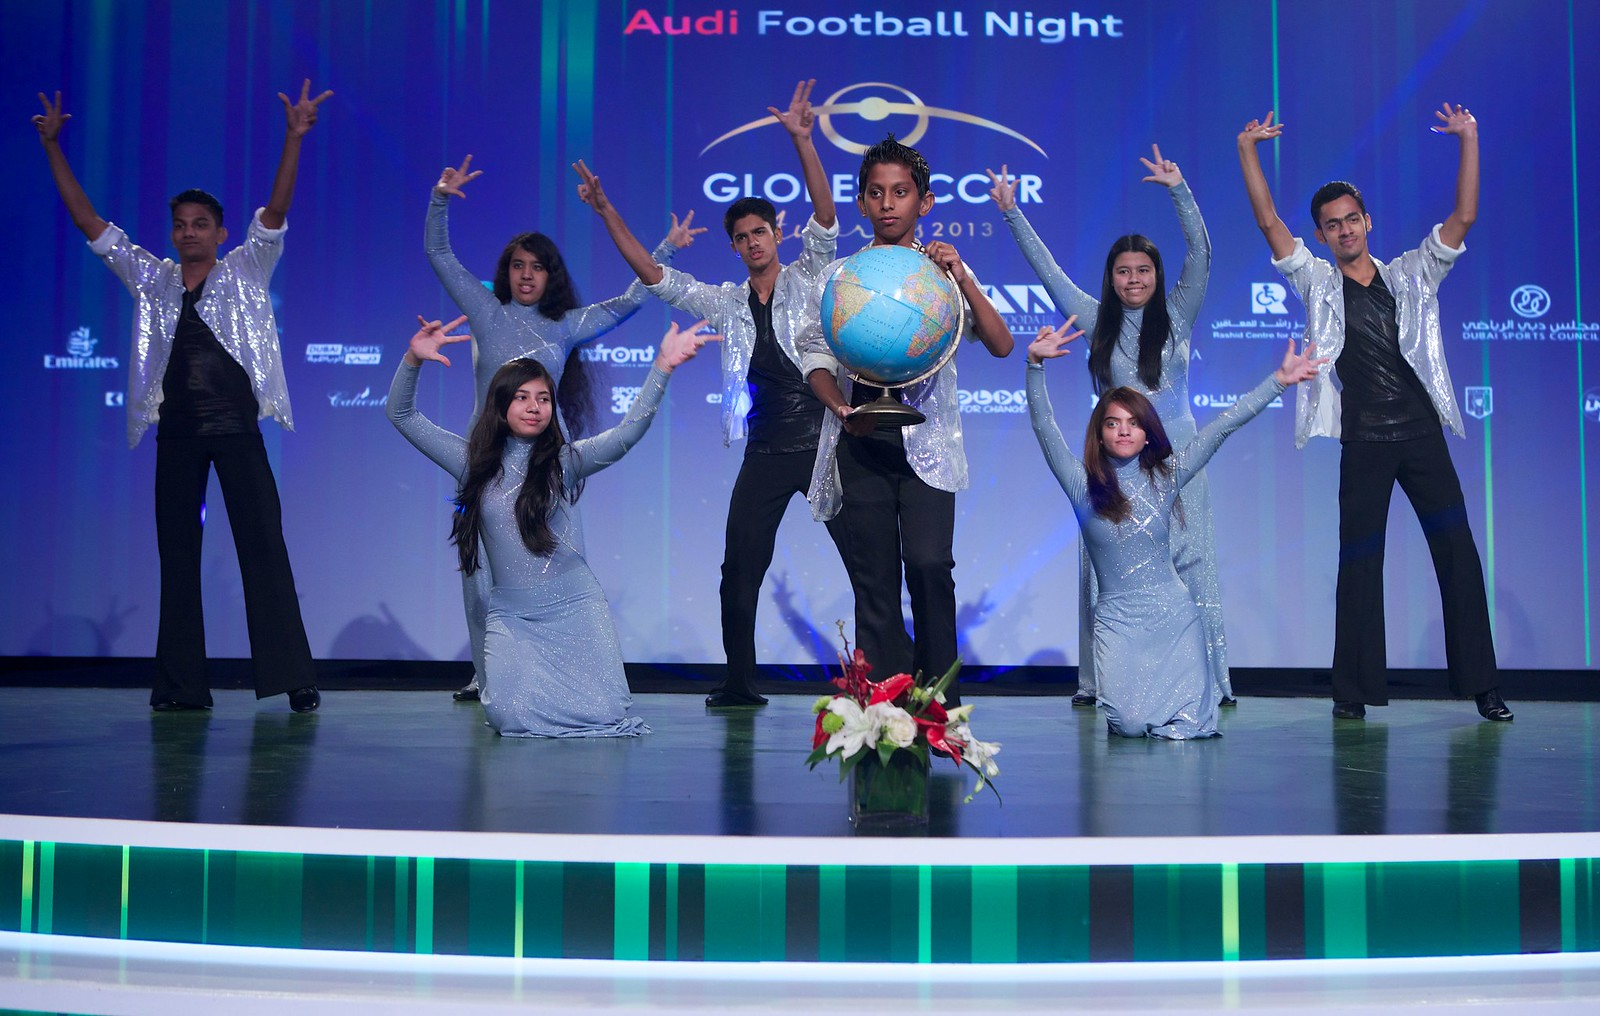 Globe Soccer Awards 215